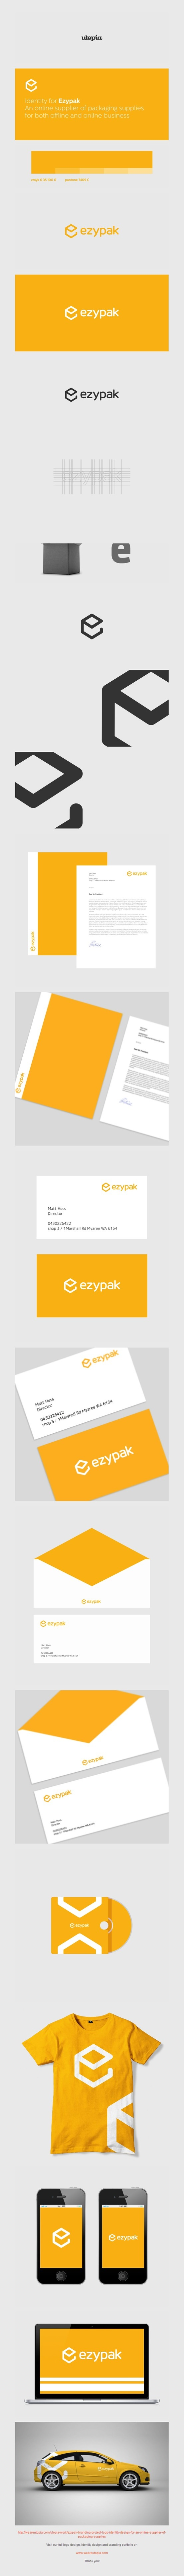 Ezypak logo and corporate identity design by Utopia Branding Agency